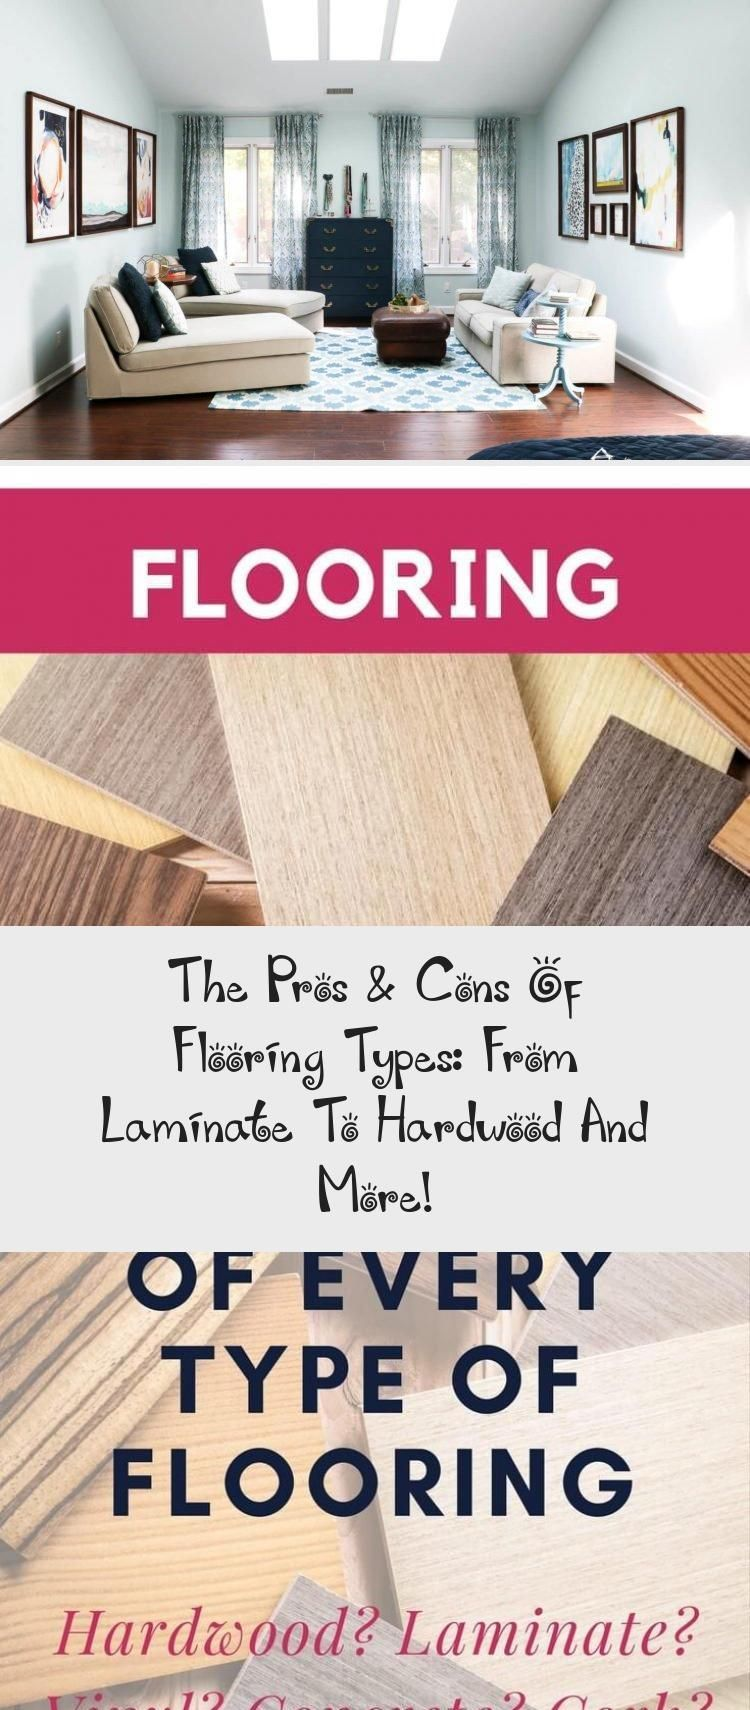 The Pros & Cons Of Flooring Types From Laminate To